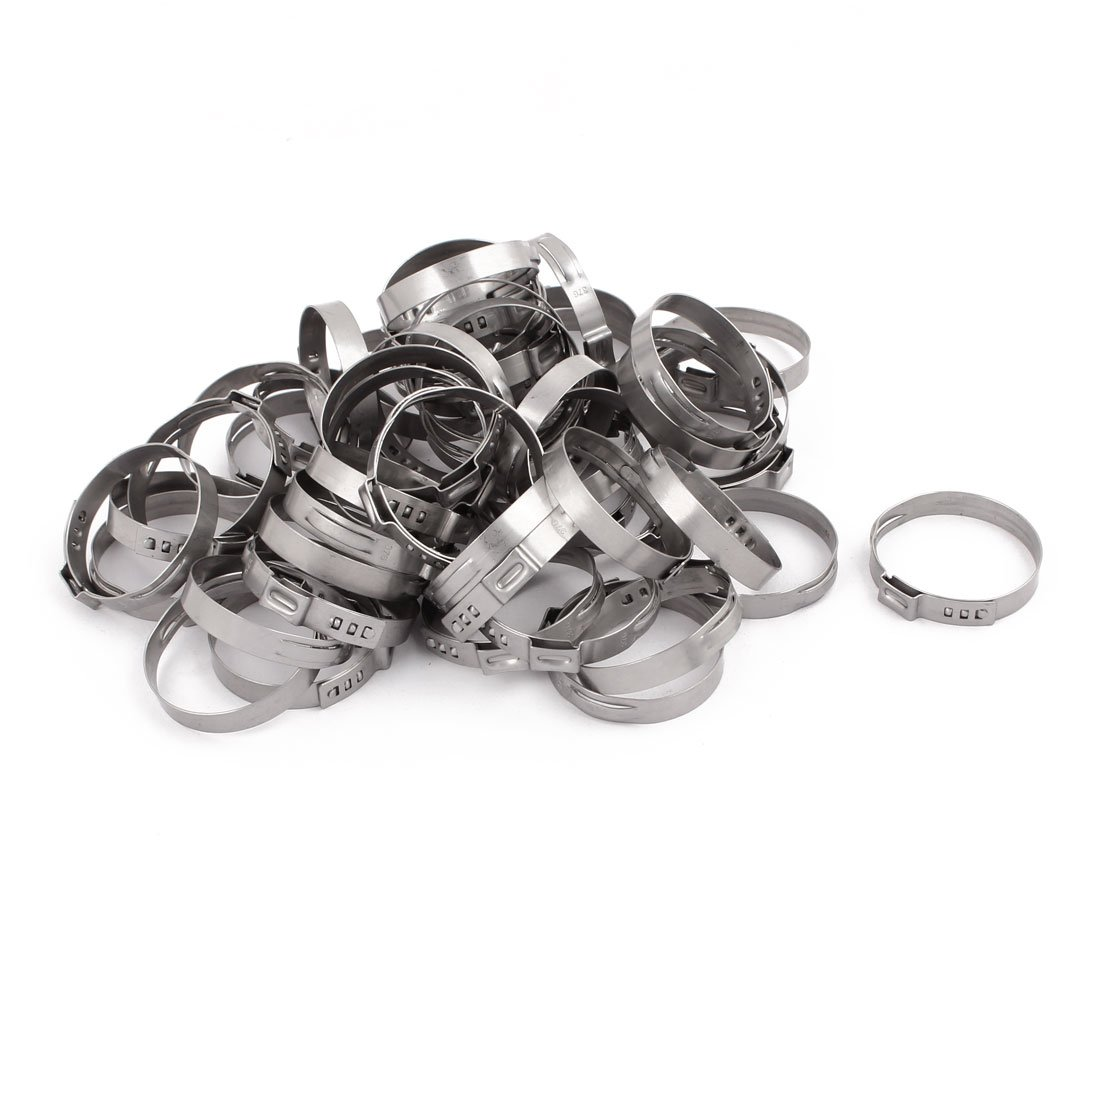 uxcell 34.4mm-37.6mm 304 Stainless Steel Adjustable Tube Hose Clamps Silver Tone 50pcs